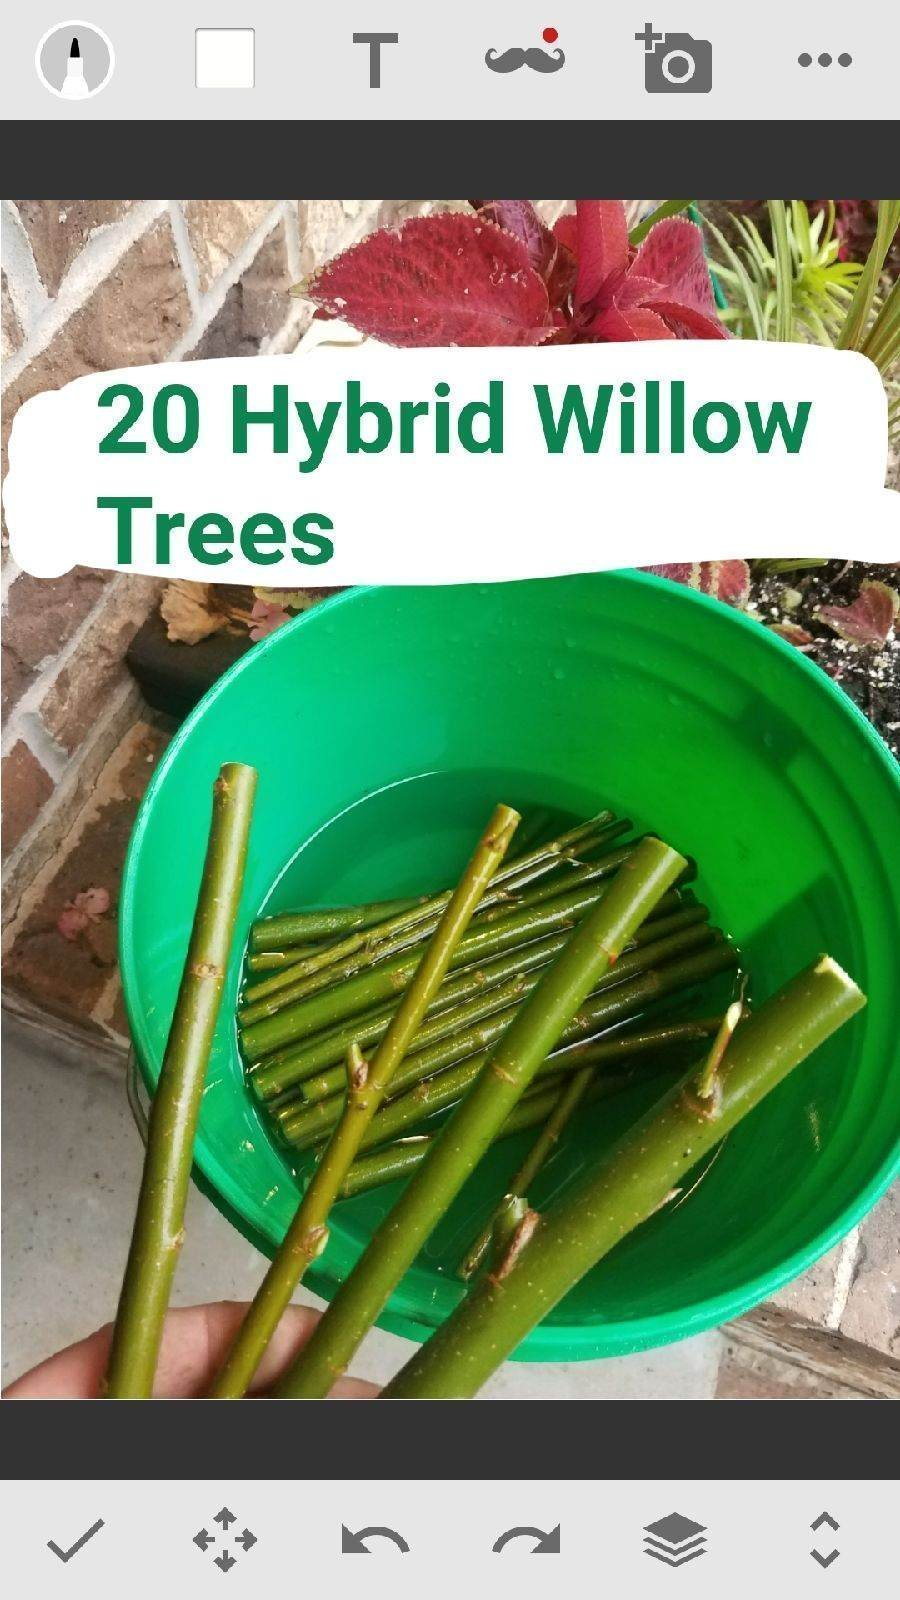 10 Austree Hybrid Willow Trees - Ready to Plant - Fast Growing Tree